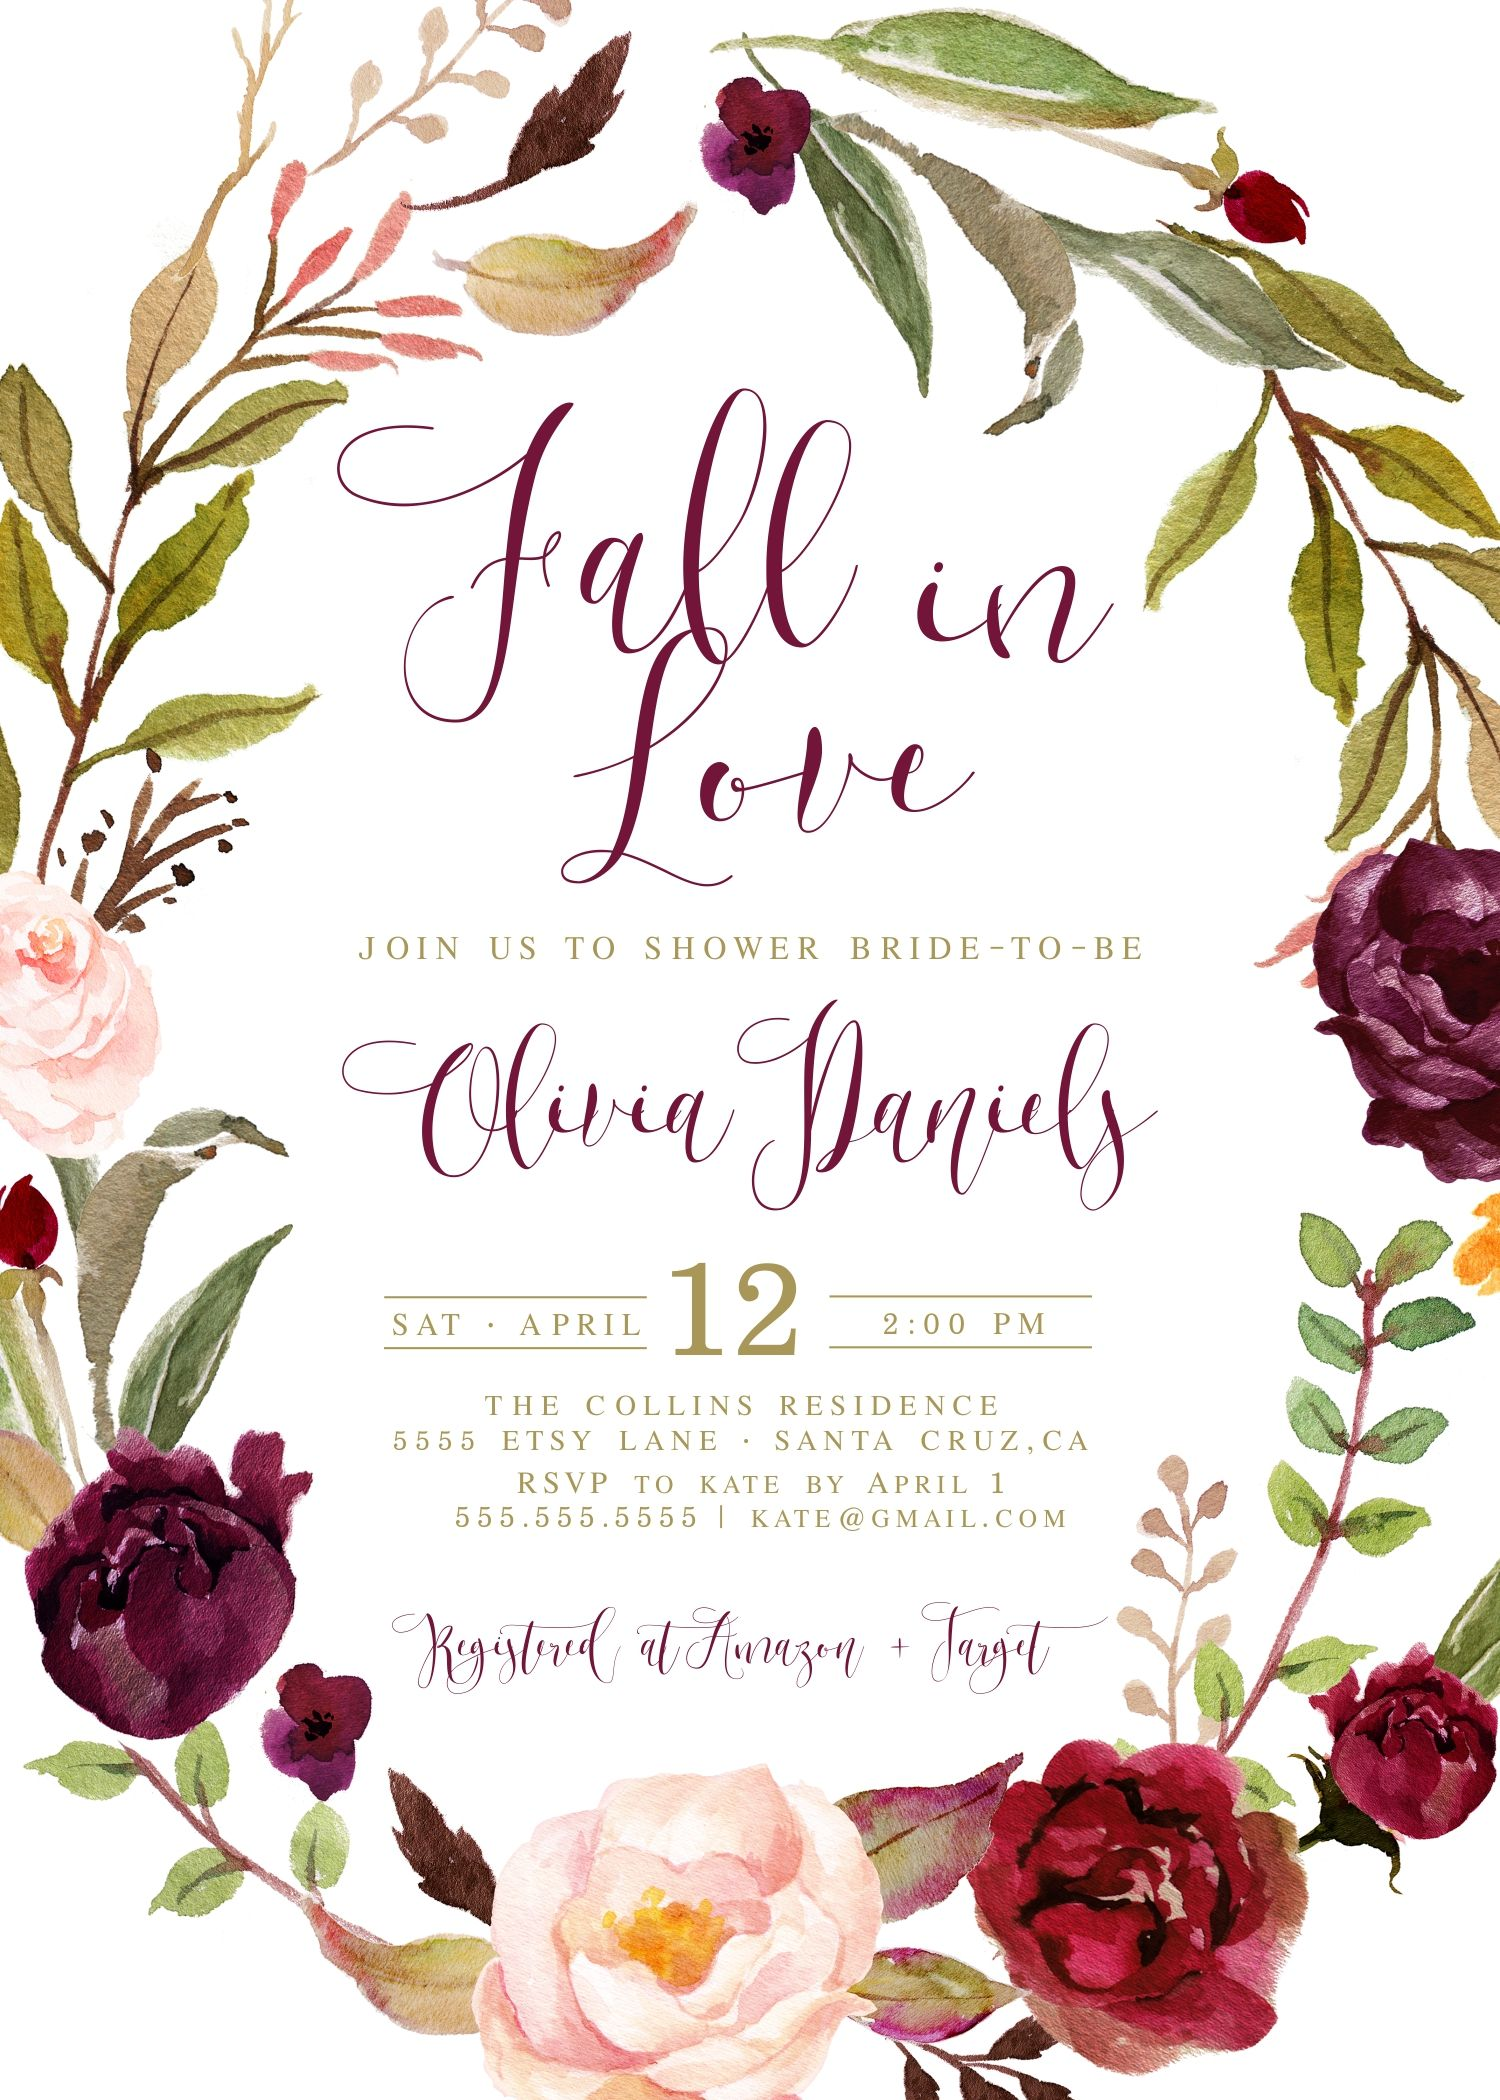 From nailing down the guest list and coordinating with vendors to selecting invitations. Fall In Love With This Autumn Bridal Shower Invitatoin Fall Bridal Shower Invitations For Au Fall Bridal Shower Invites Fall Wedding Shower Fall Bridal Shower